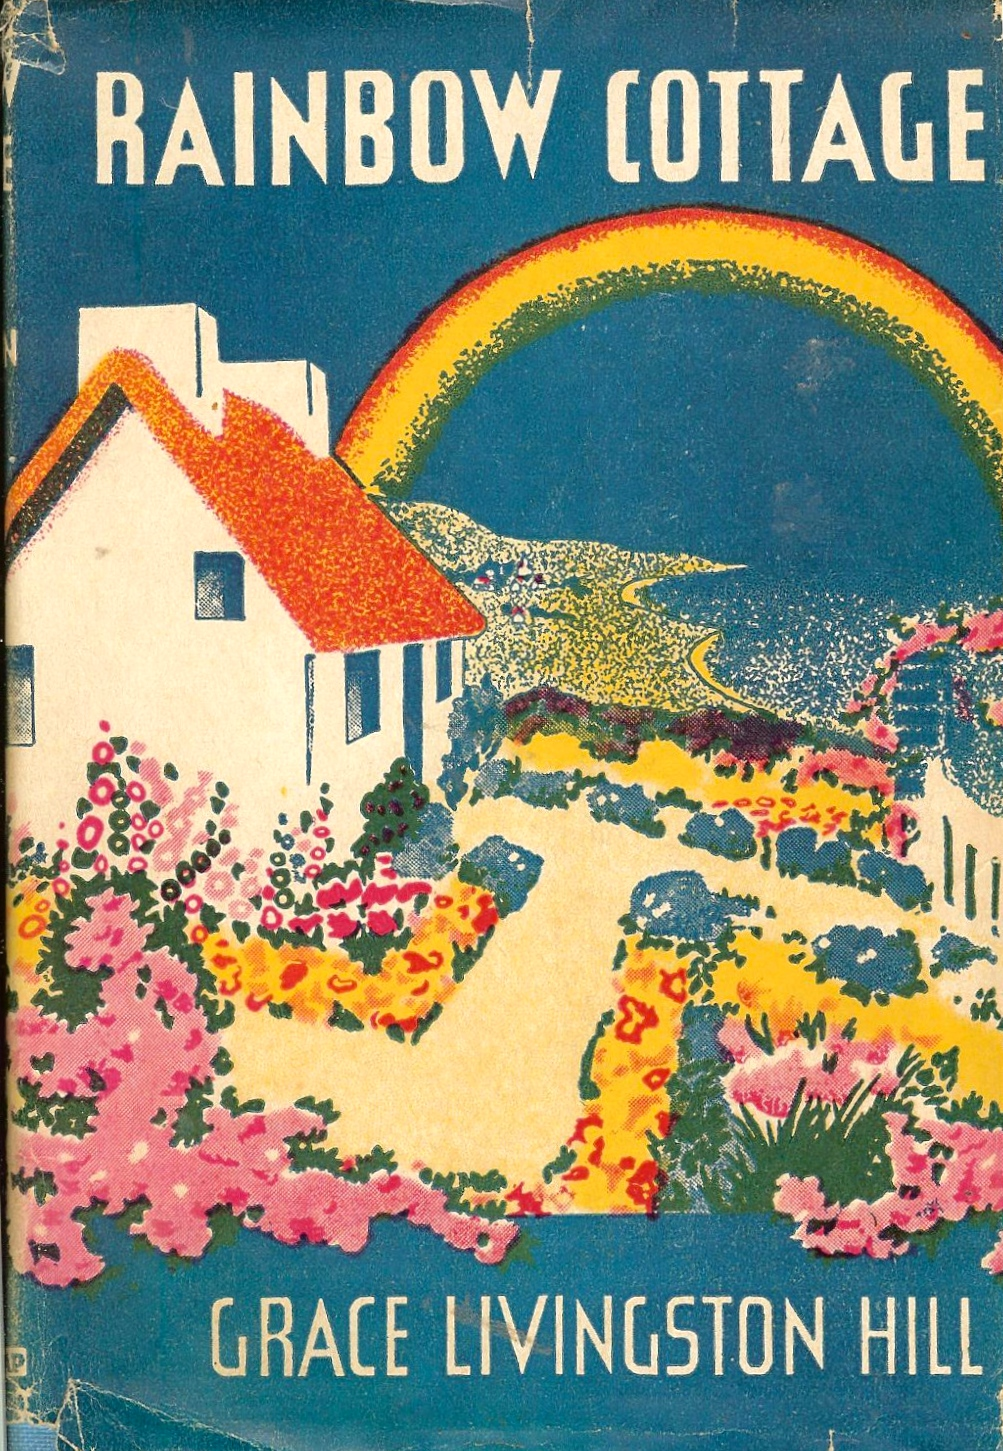 Vintage Grace Llivingston Hill book Rainbow Cottage. Book has its original dust jacket. Book was published in 1934. Available right  here  for $8.